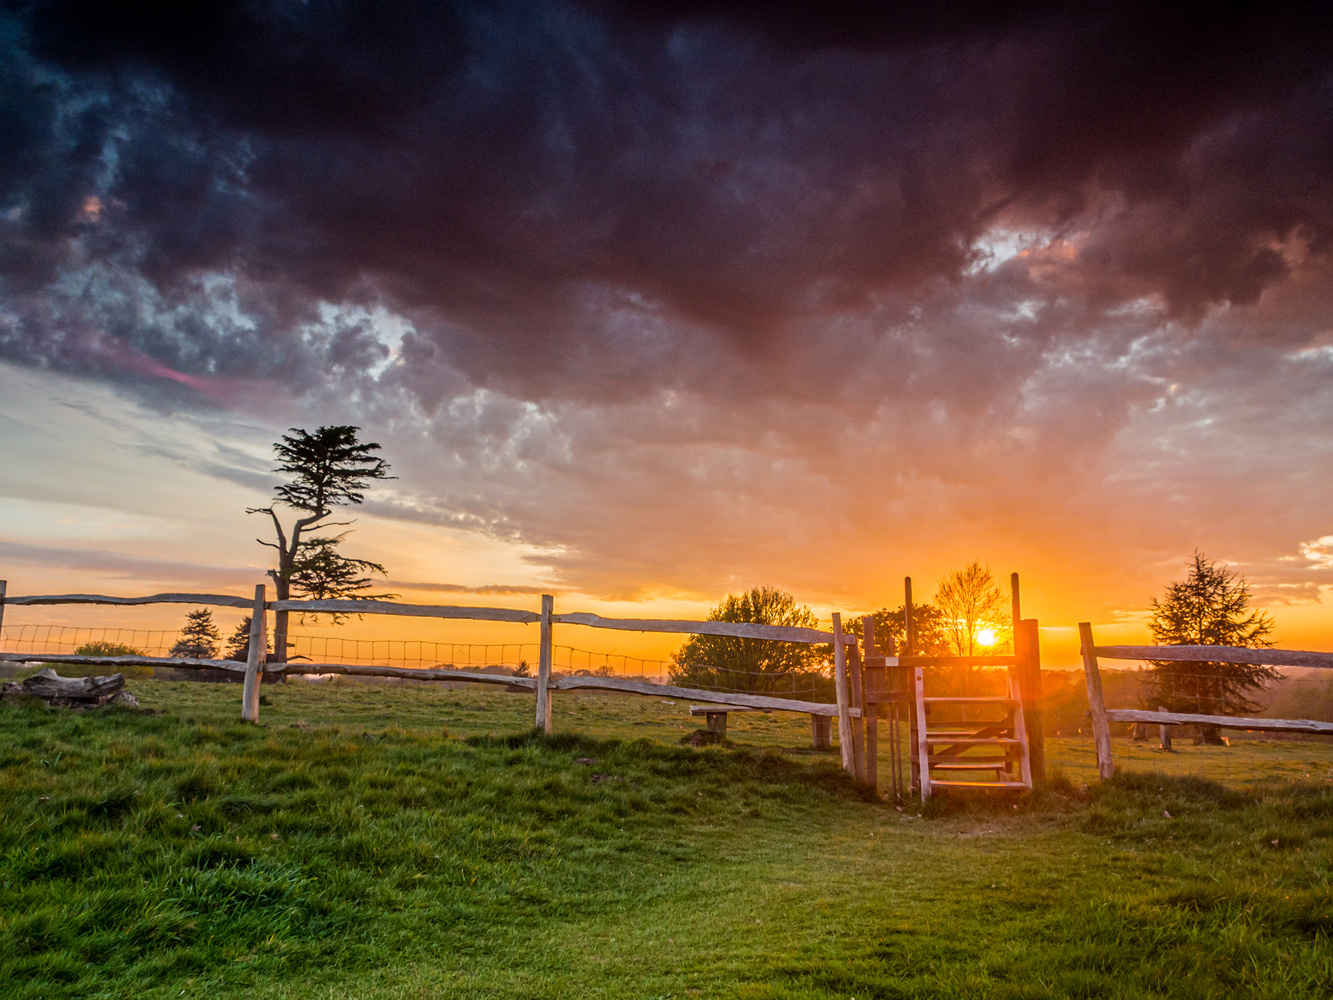 Sunset over the Stile by Peter Holloway